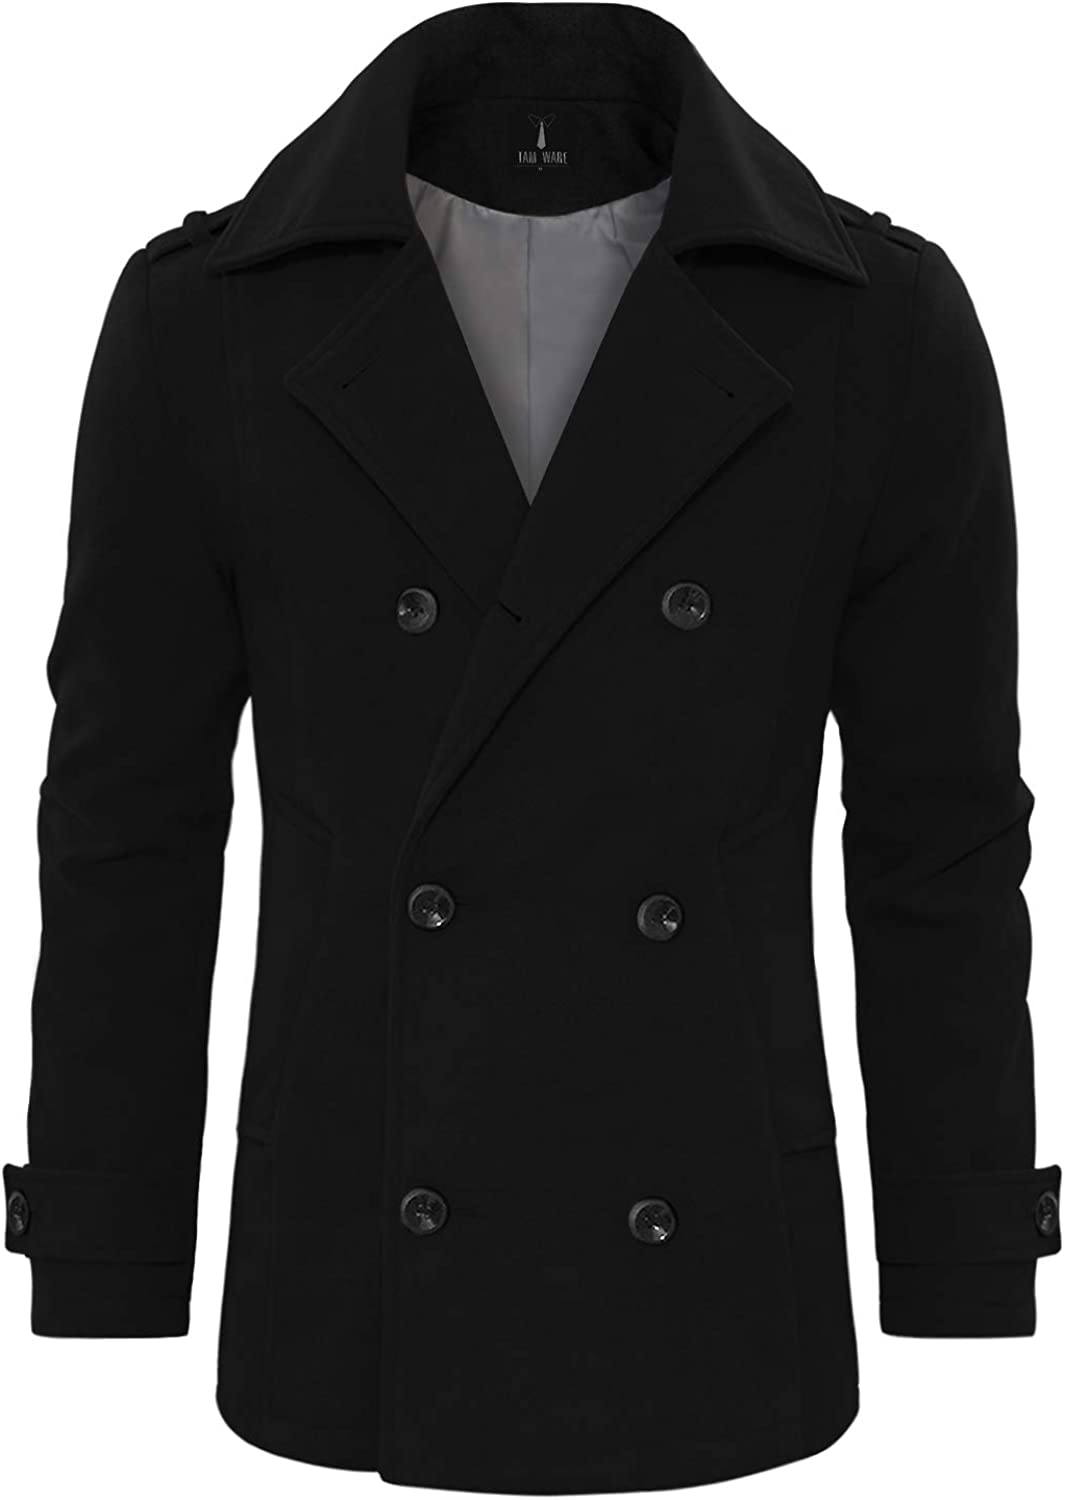 TAM WARE Men's Stylish Wool Blend Double Breasted Pea Coat